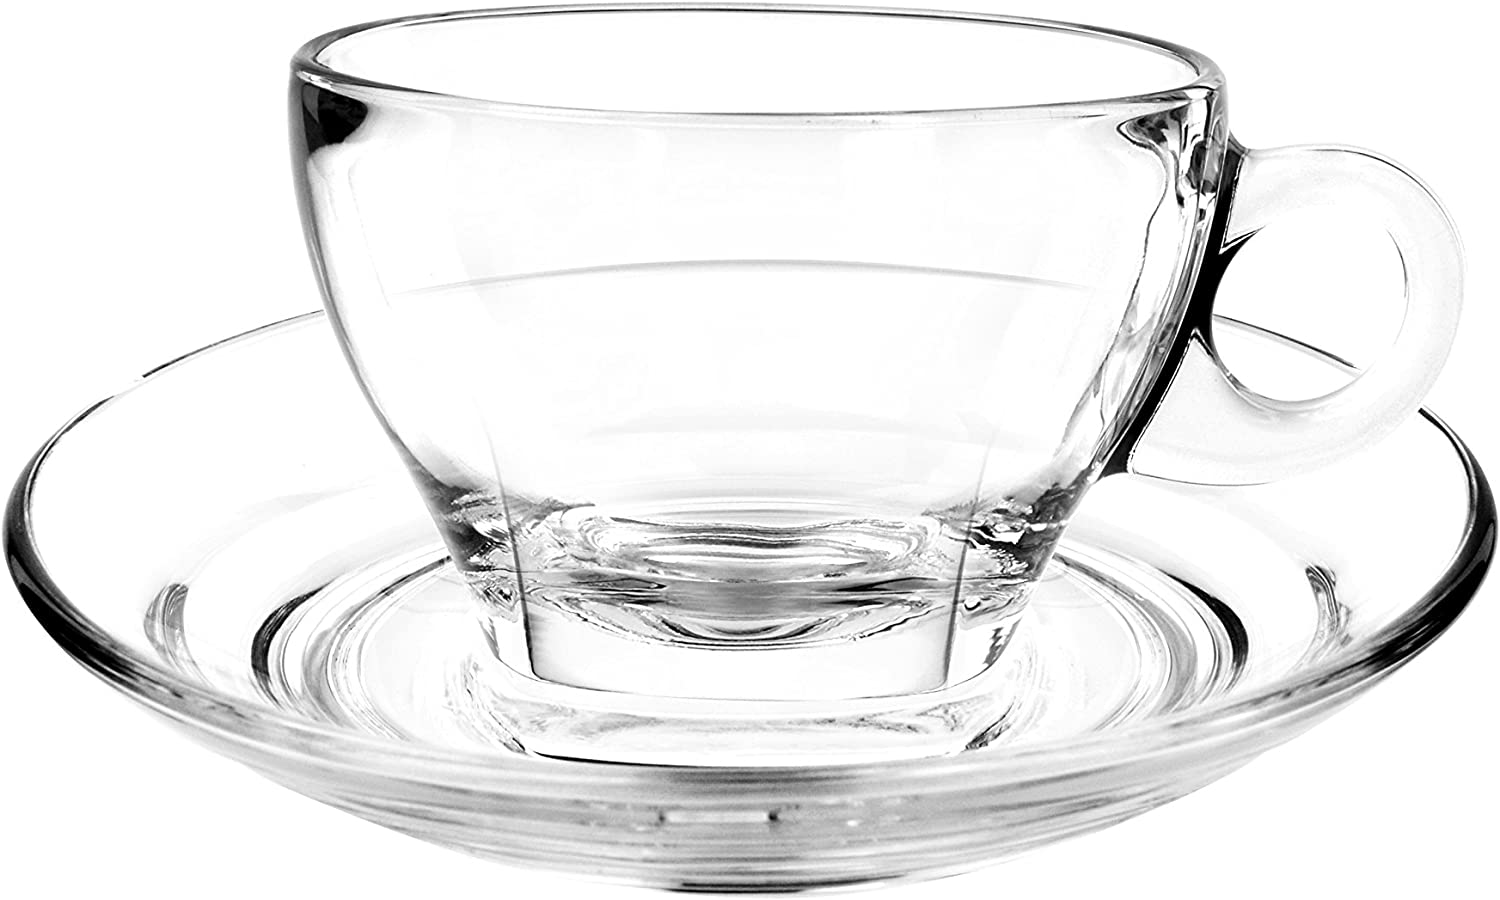 Cuisivin Caffé Collection Latte 9 oz Cup and Saucer-gift box set (2 cups + 2 saucers) Drinkware Cups With Saucers, Clear